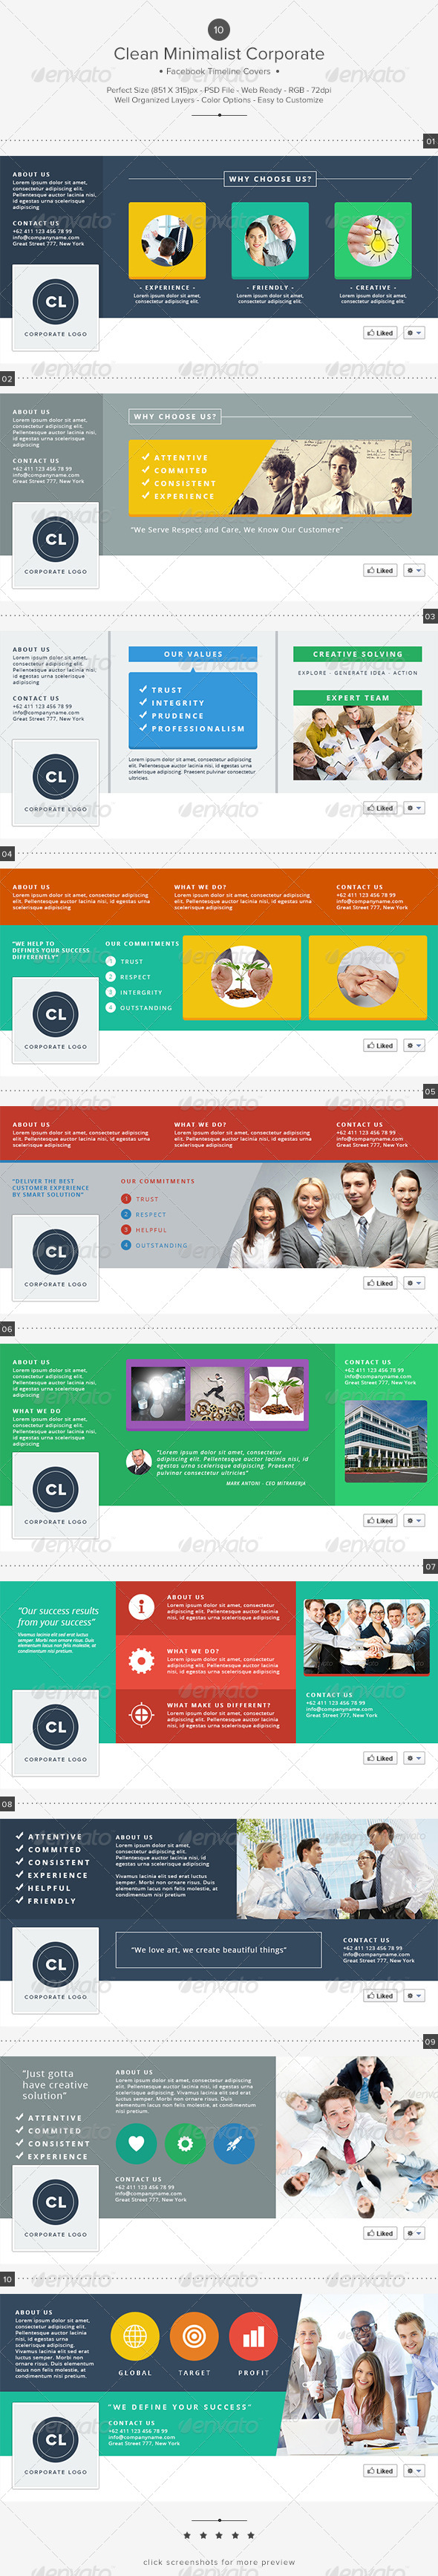 GraphicRiver 10 Clean Minimalist Corporate Facebook Covers 7371259